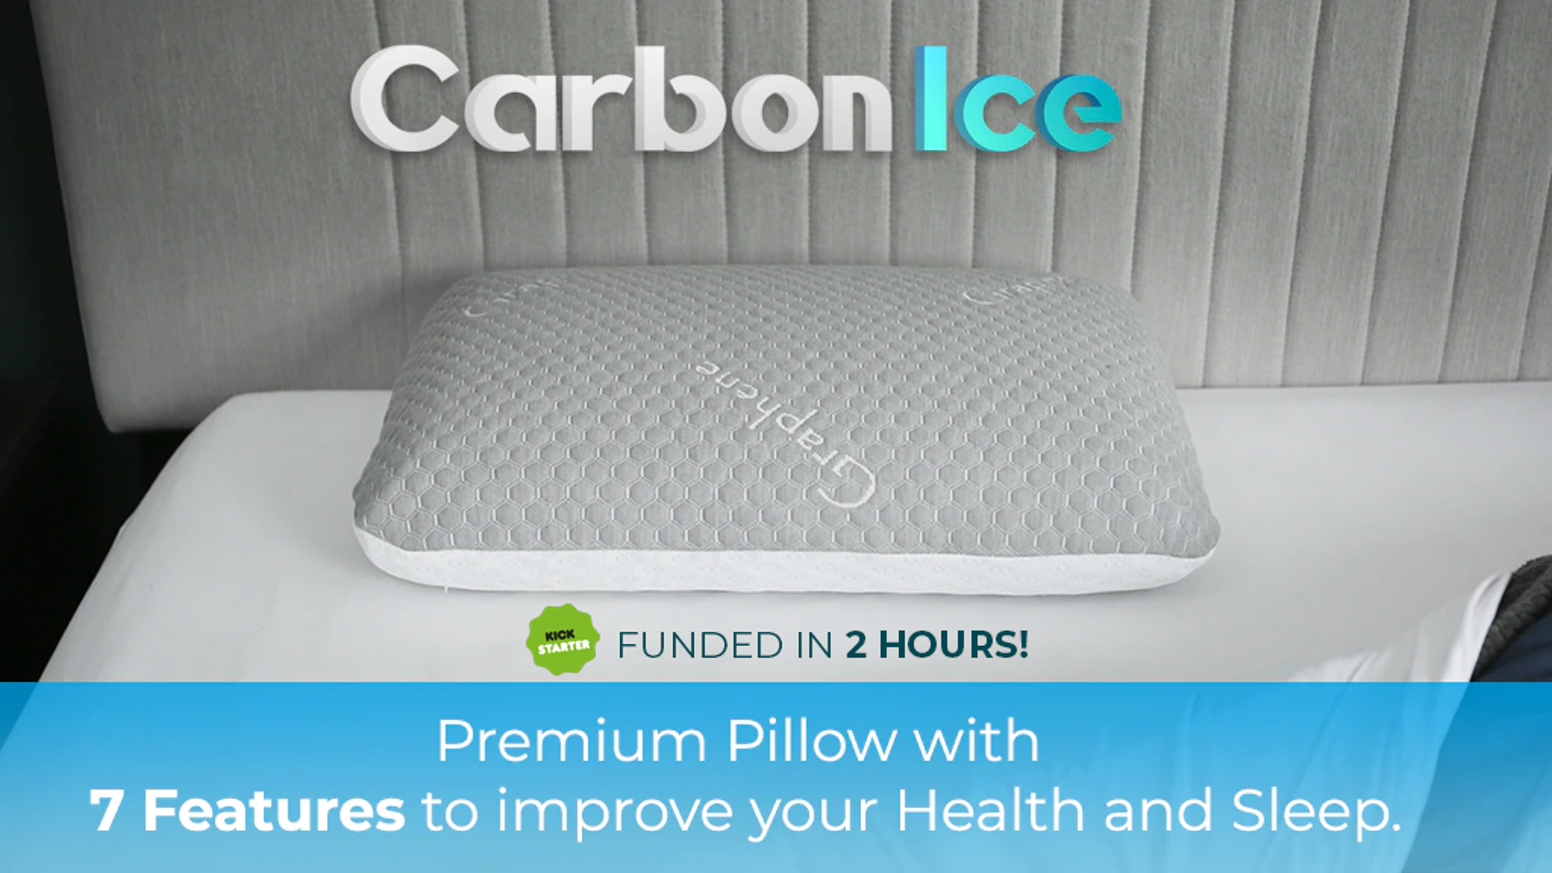 The World's first Revolutionary Pillow with 7 Features-Maximum Bacteria Defense & ActivAir Cooling Technology for incredible comfort.